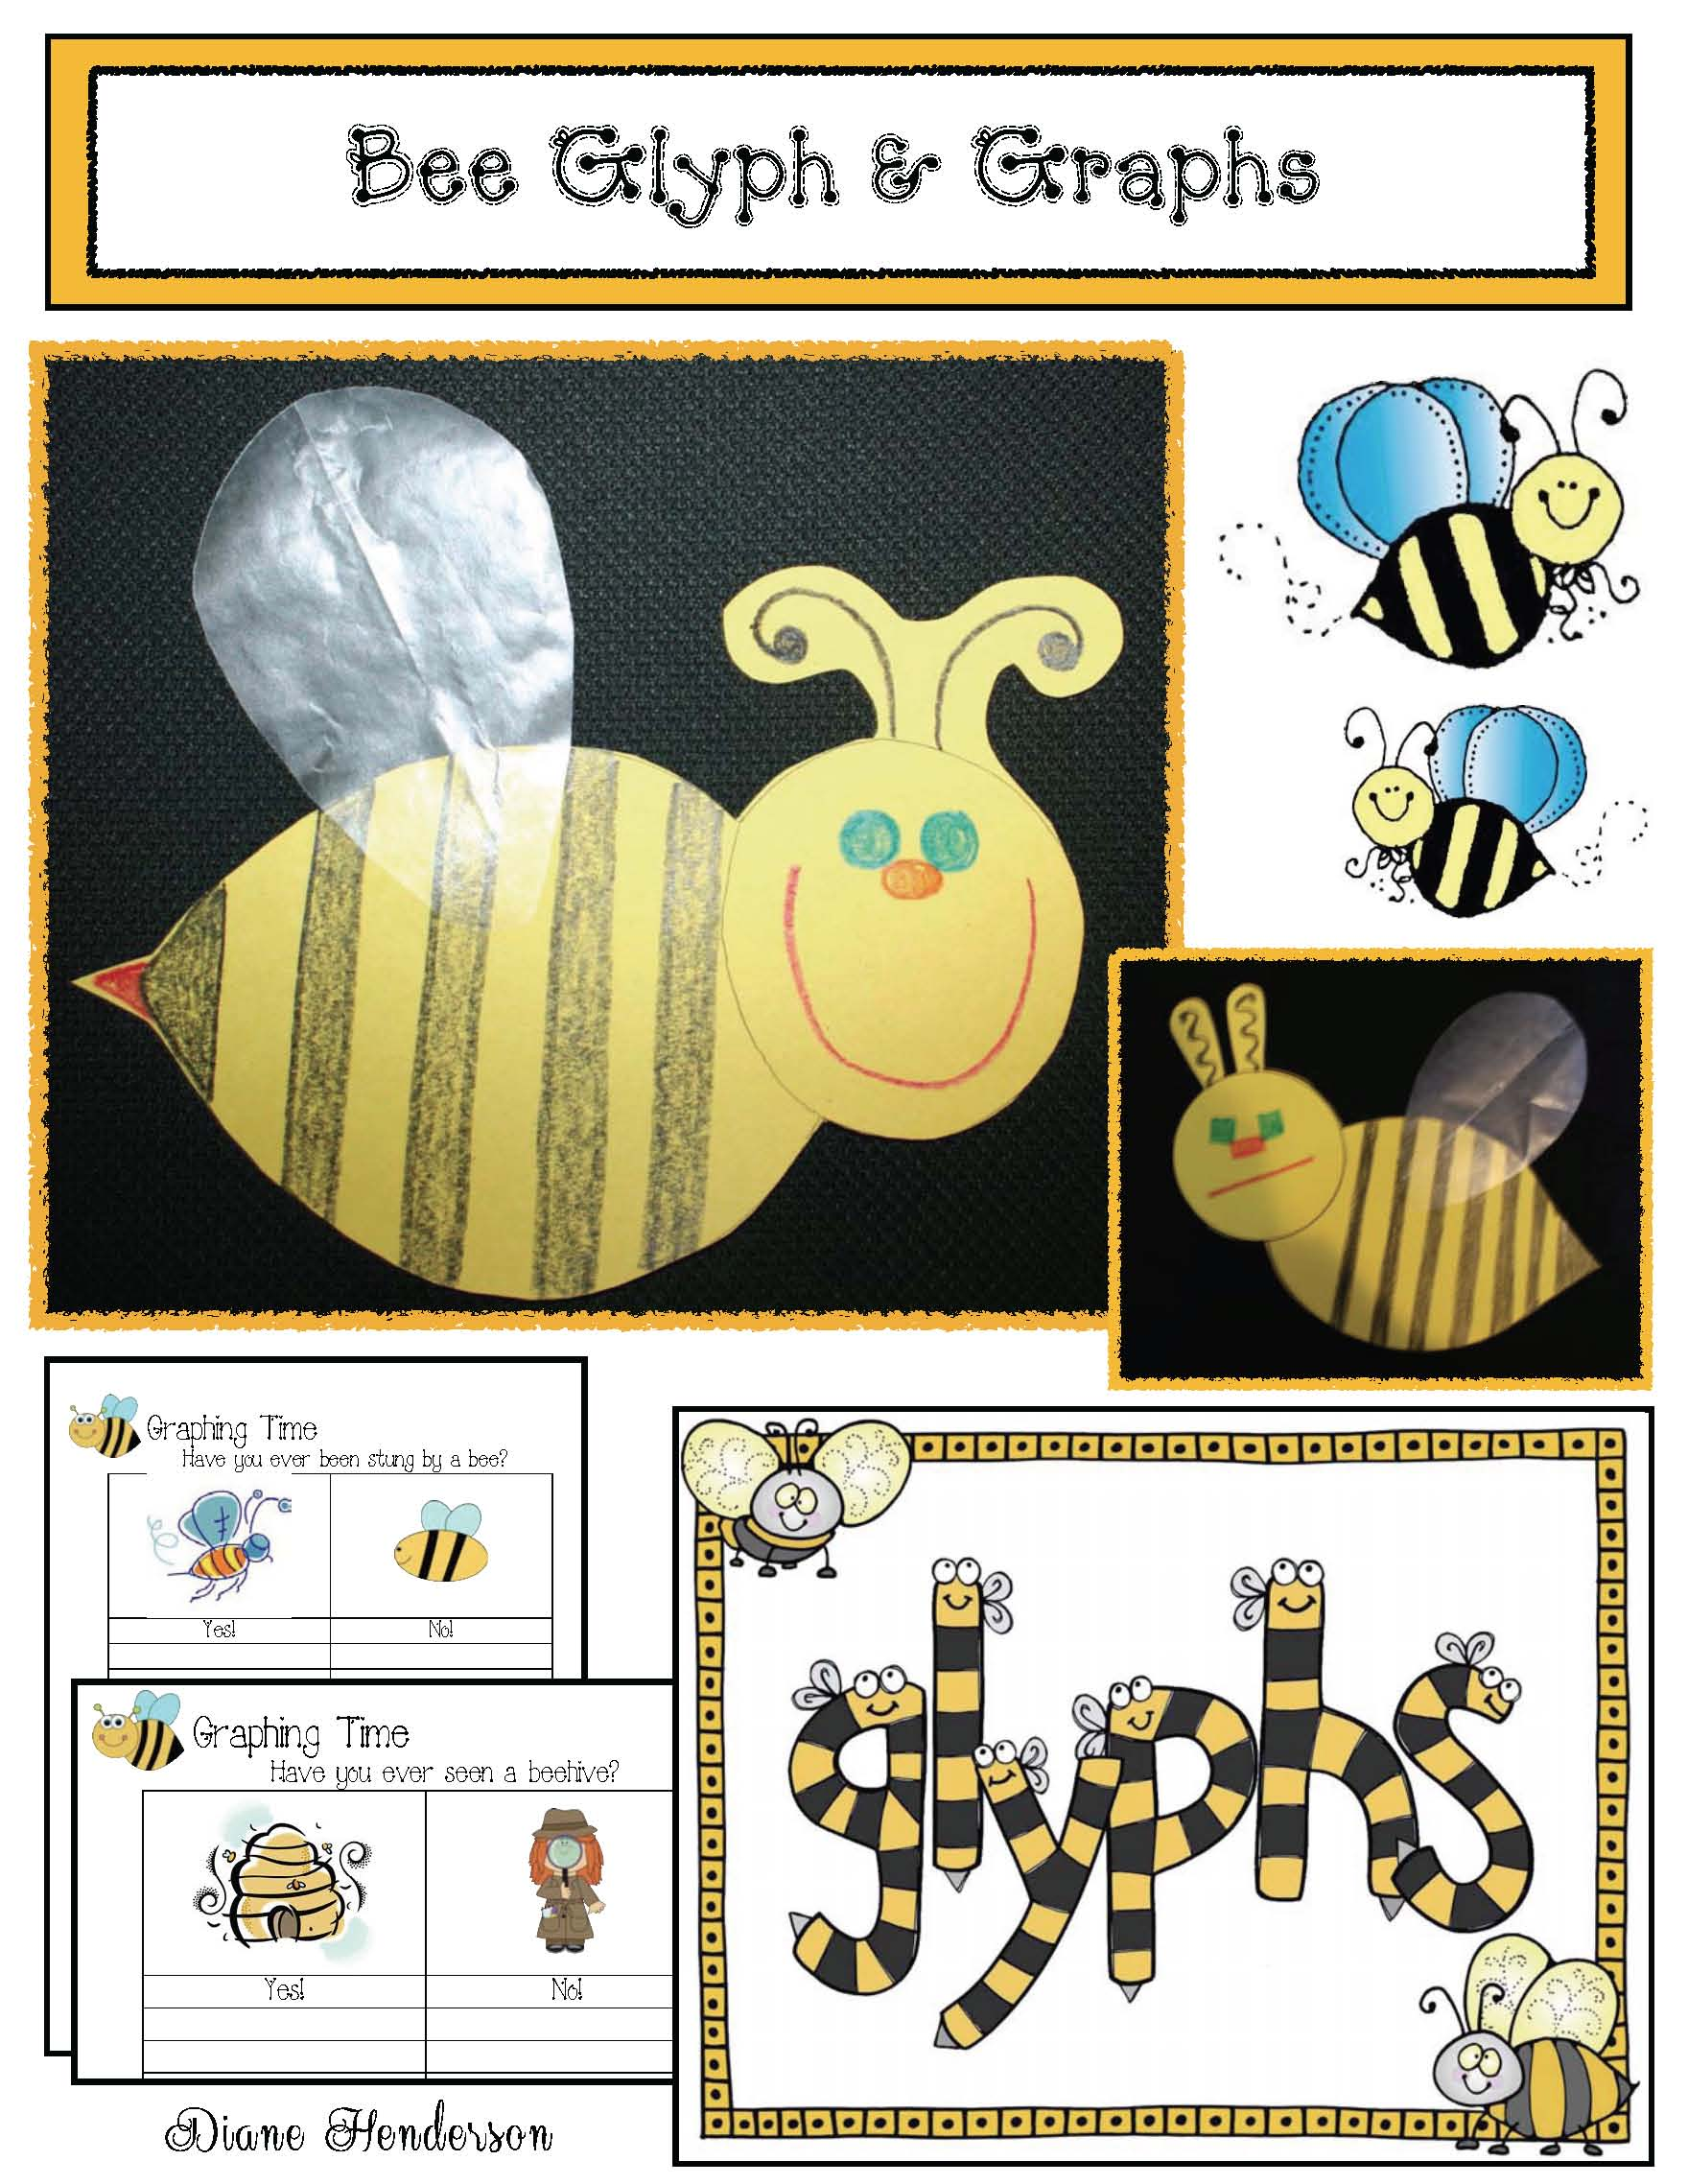 glyphs, summer glyphs, glyphs for spring, glyphs for May, bee glyph, flower glyph, listening and following directions activities